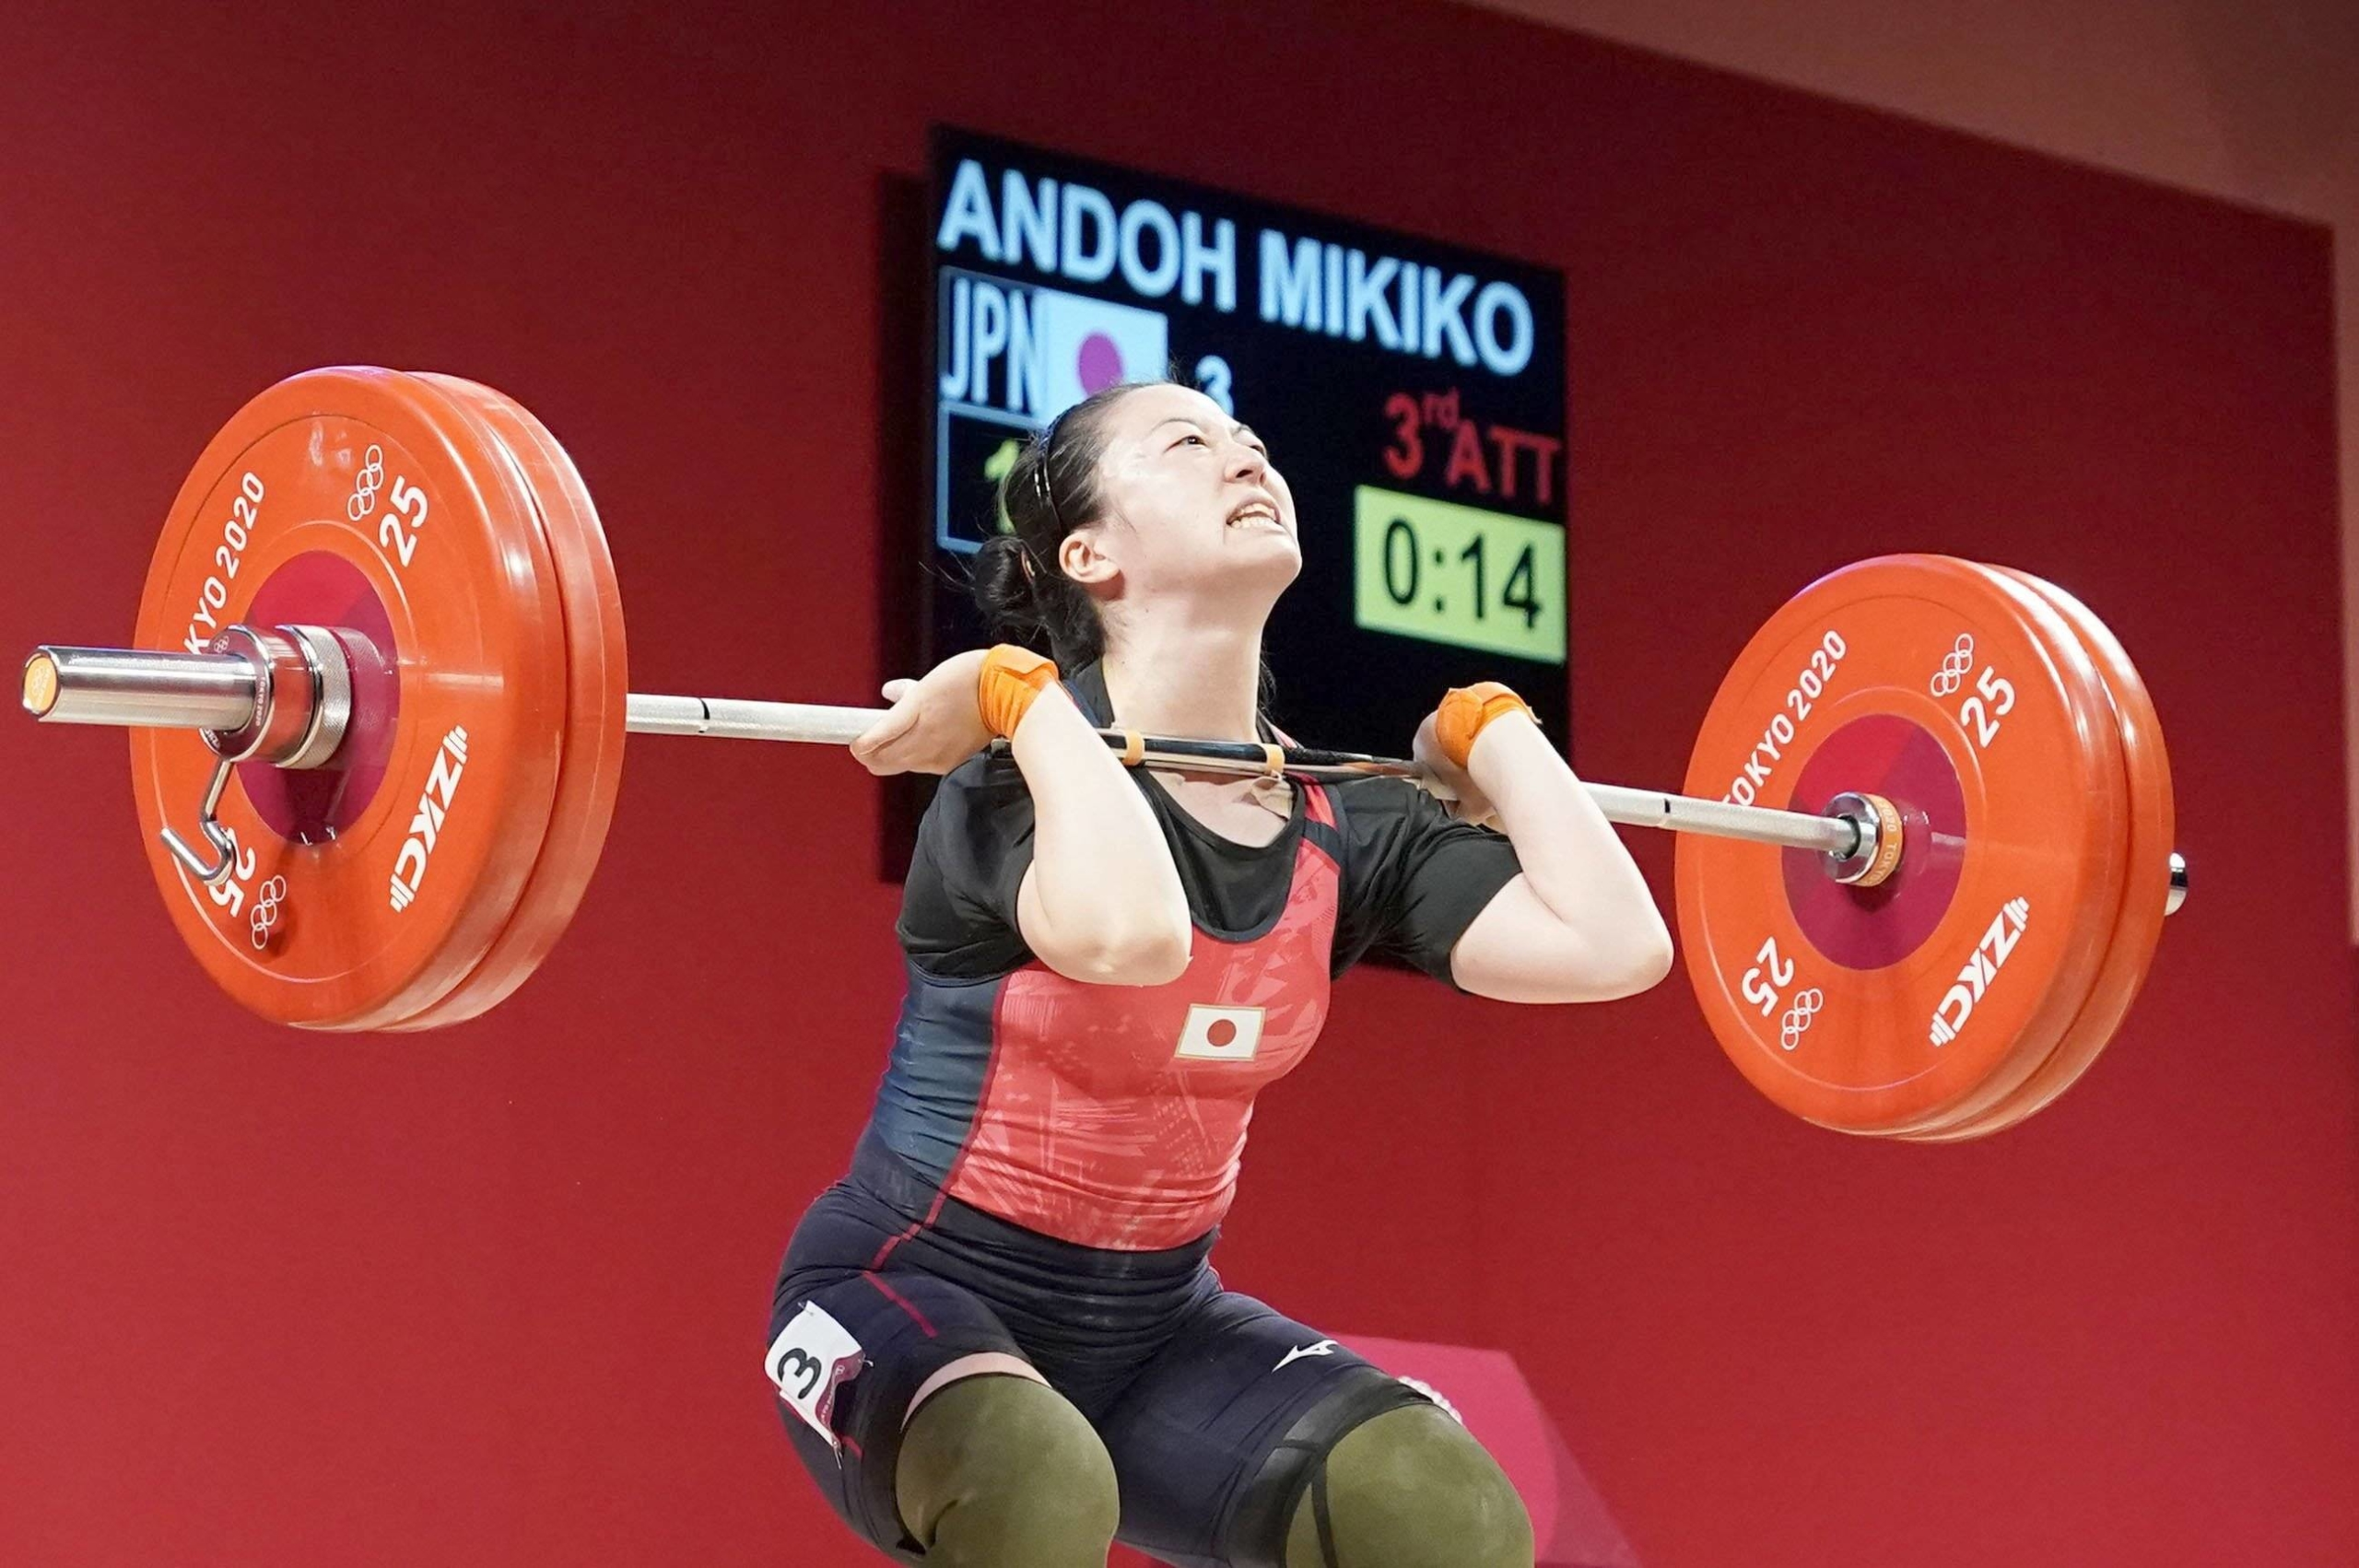 Ando lifted 120 kg in her final jerk attempt Tuesday to clinch the bronze medal.   KYODO